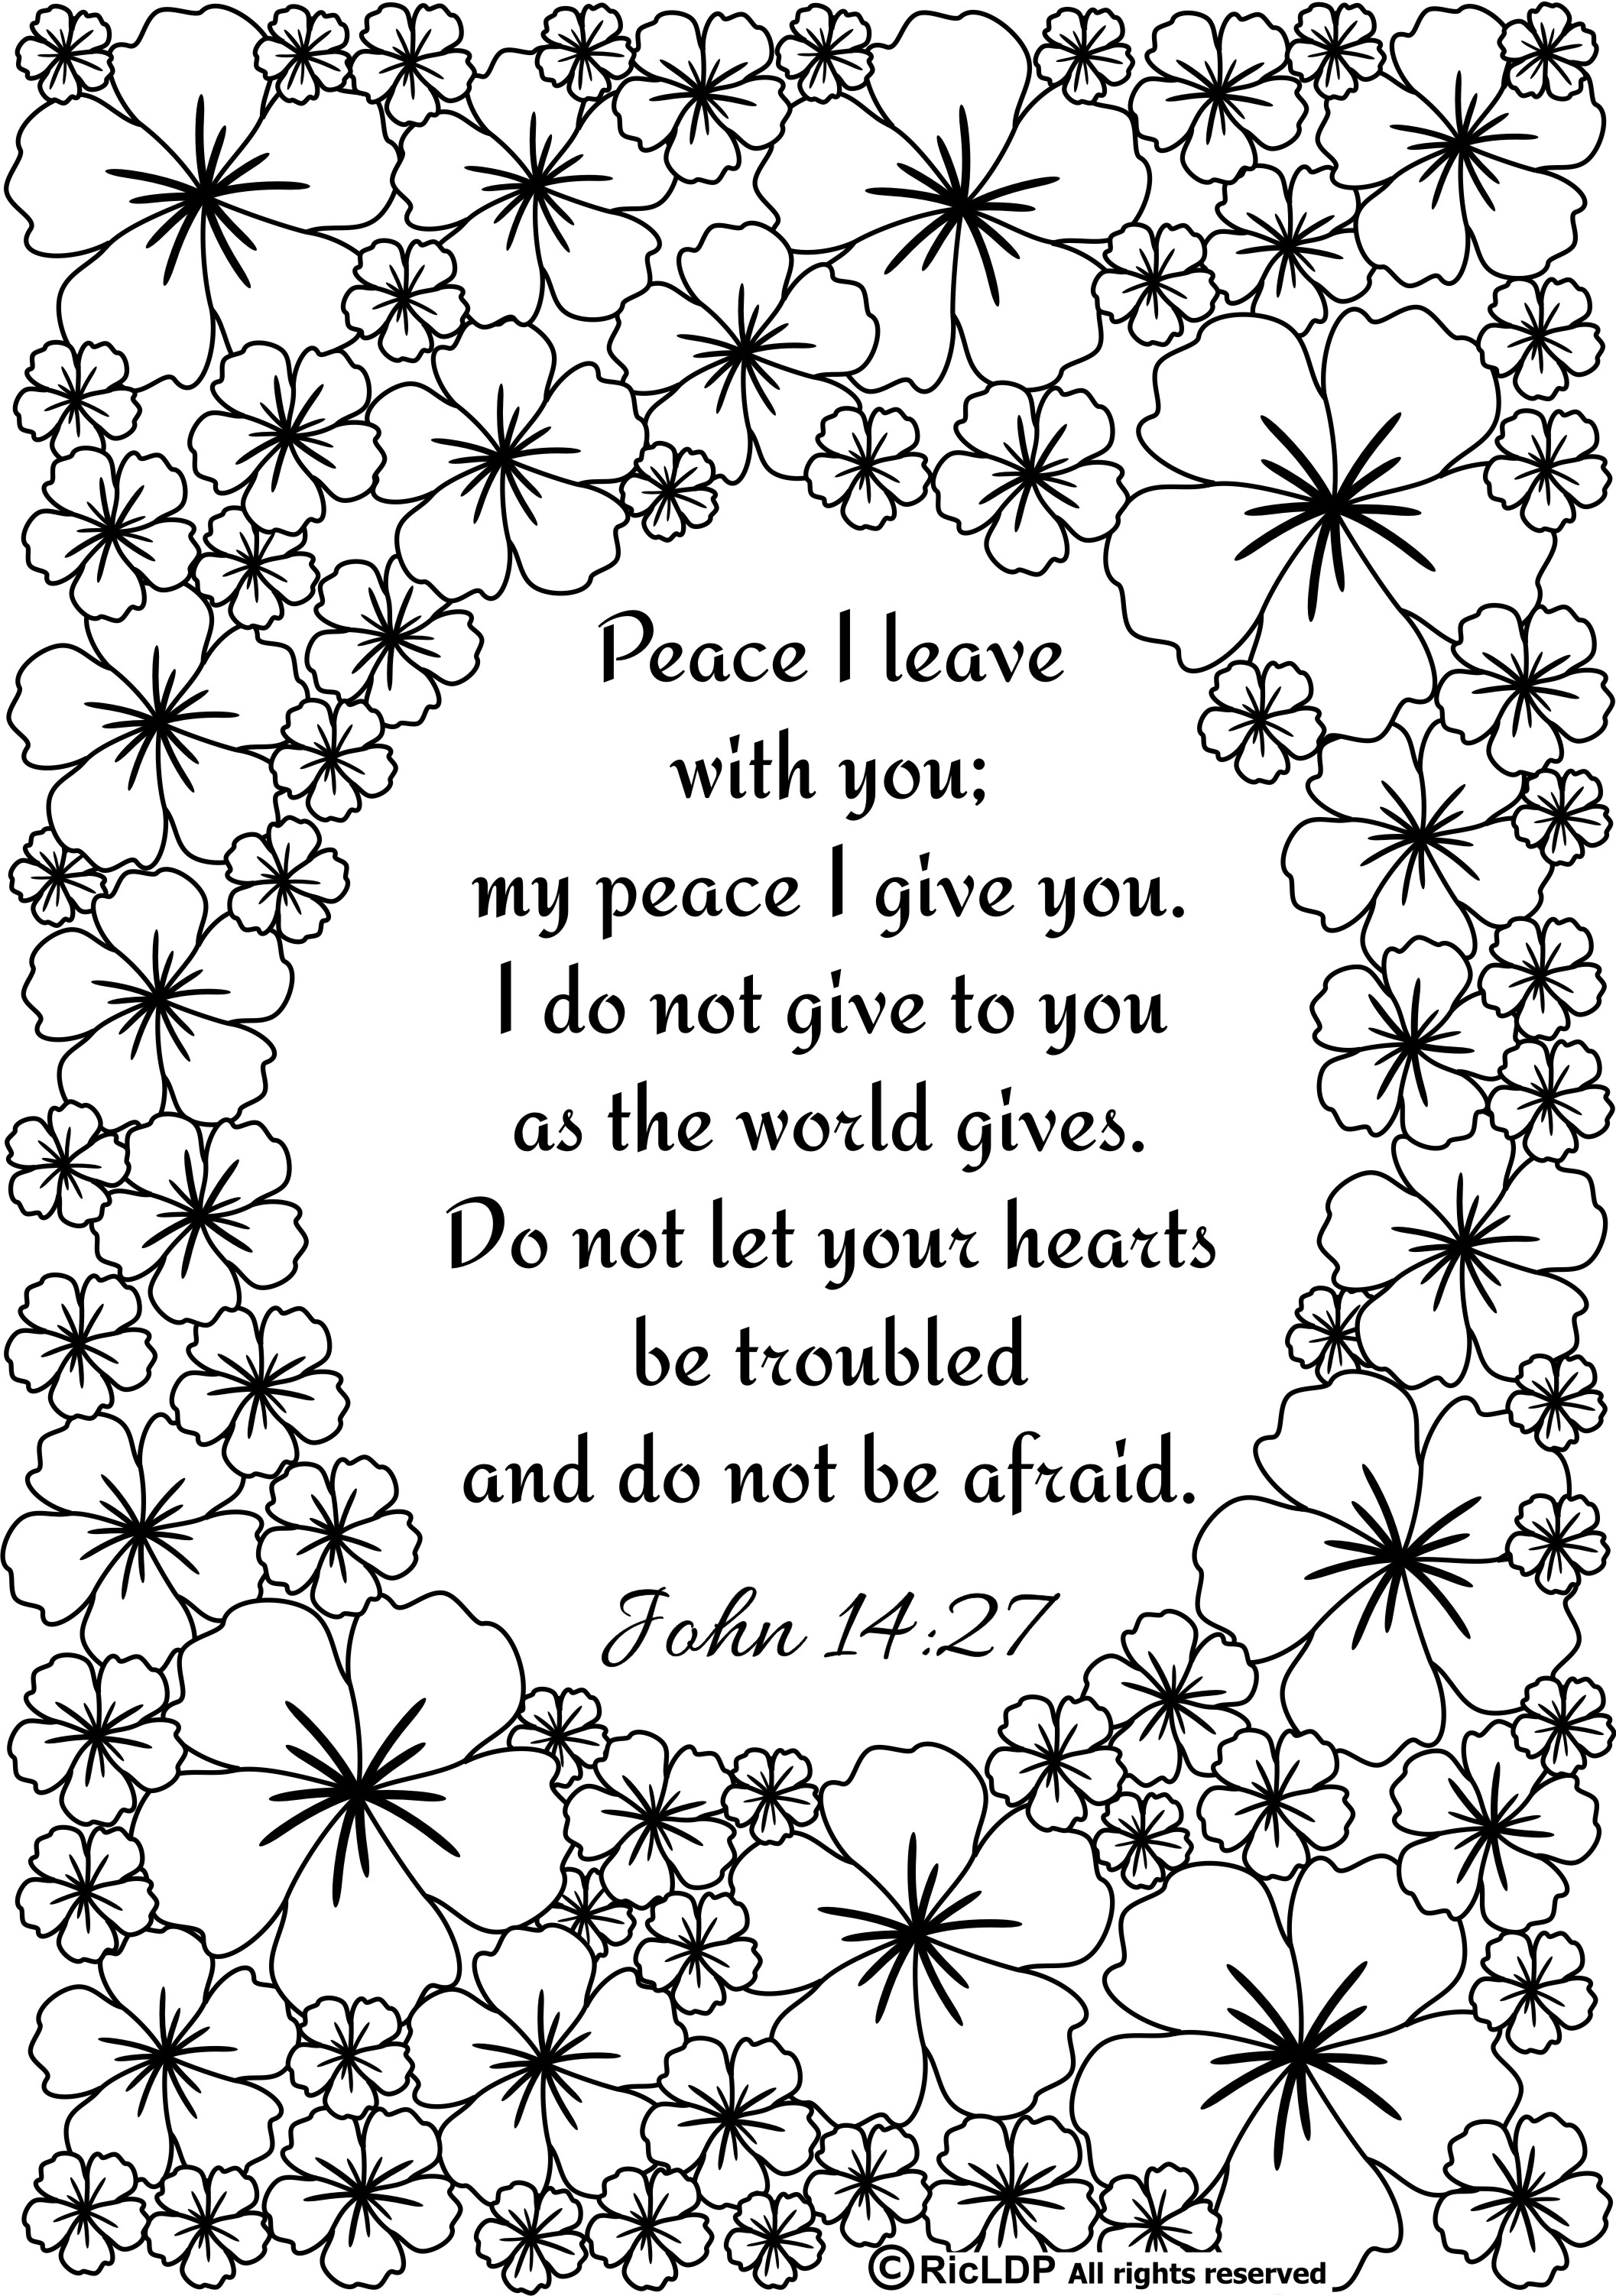 Free Scripture Coloring Pages Download 1n - Save it to your computer